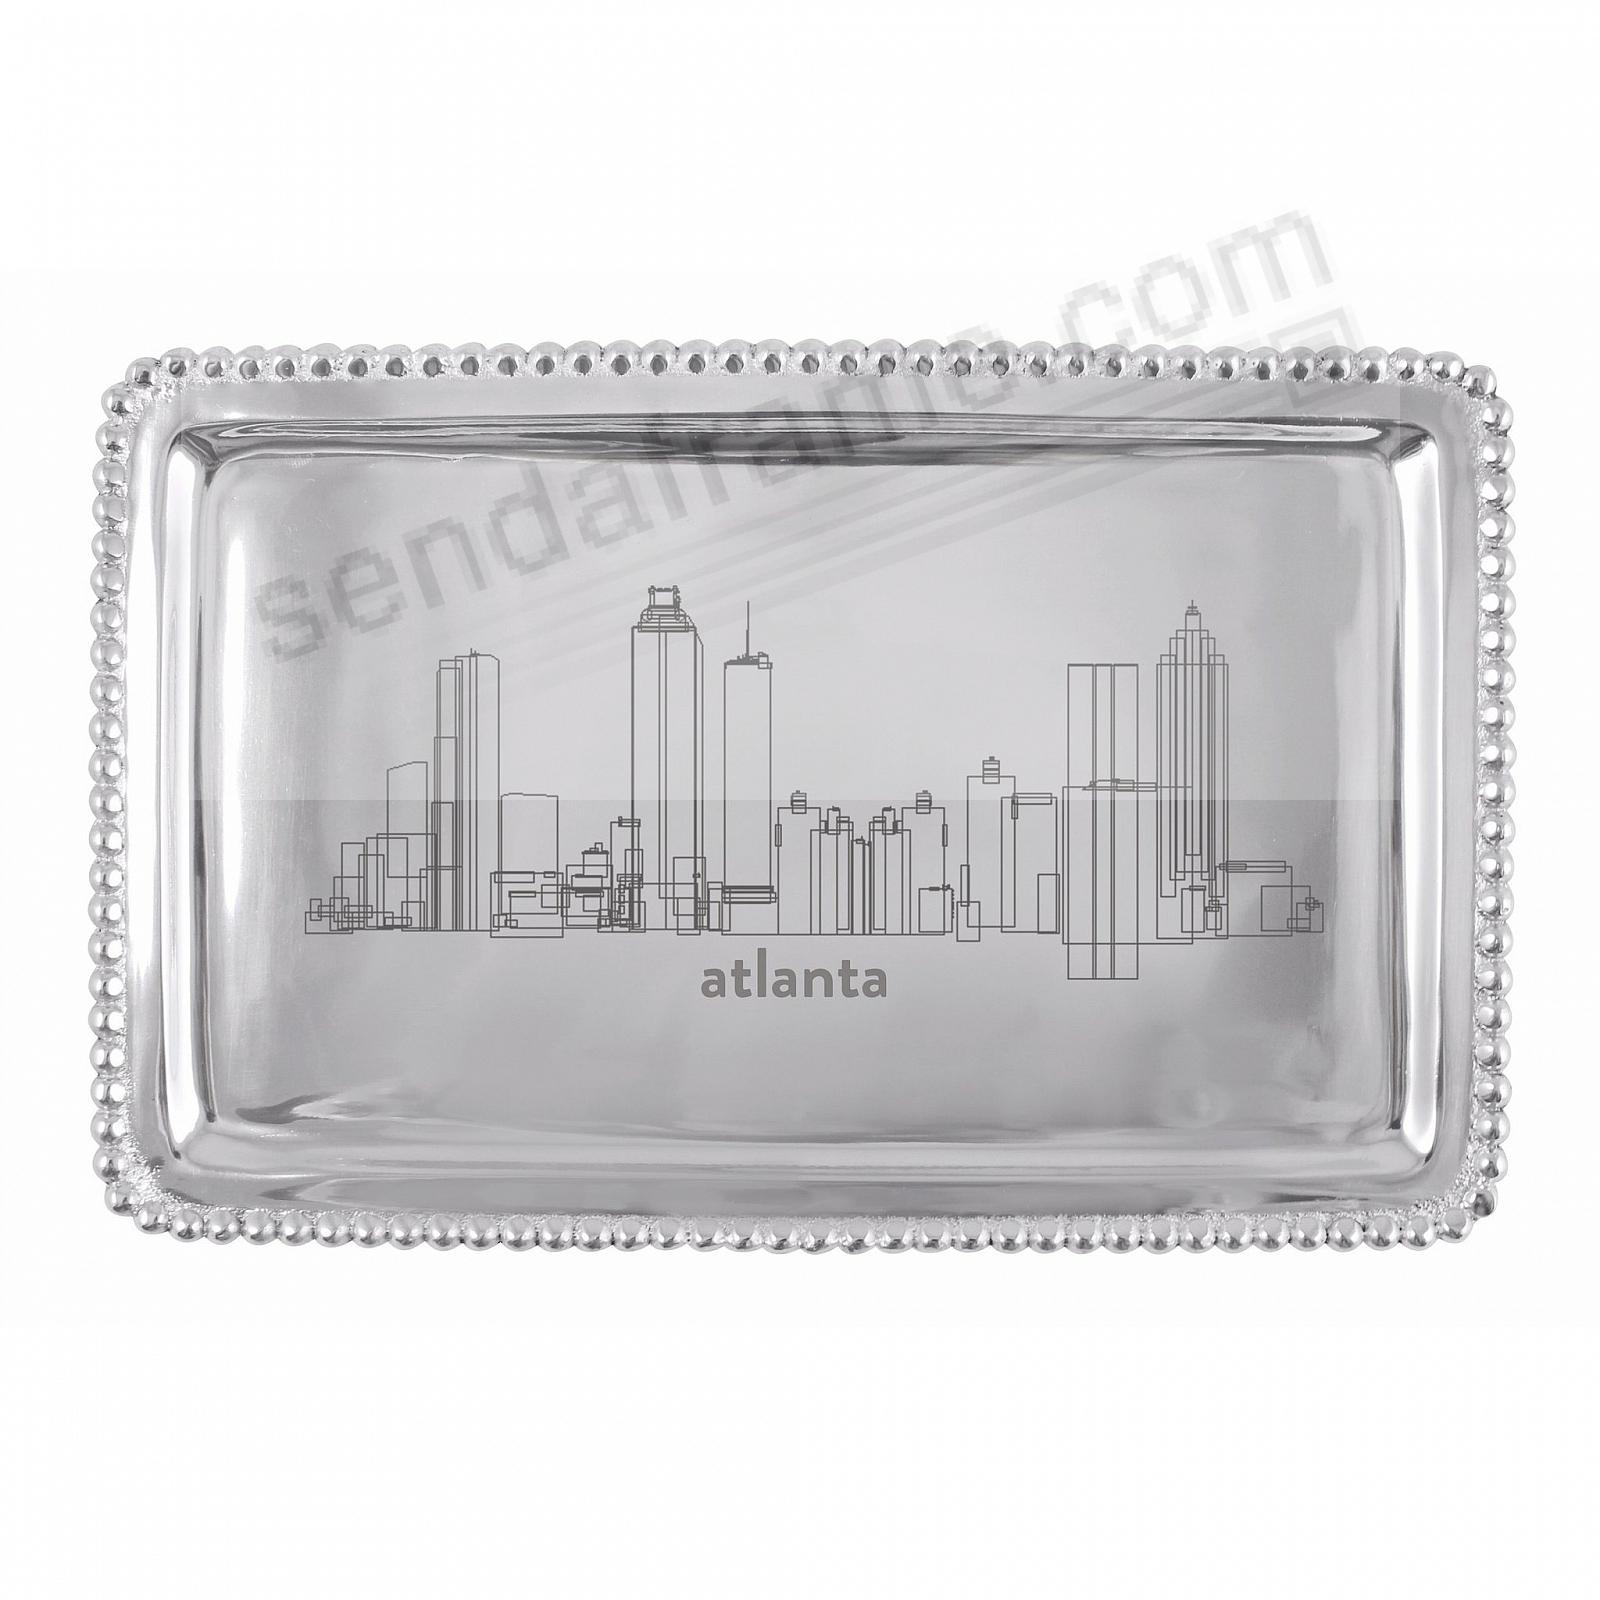 The ATLANTA-GA CITYSCAPE BEADED BUFFET 9in TRAY crafted by Mariposa®